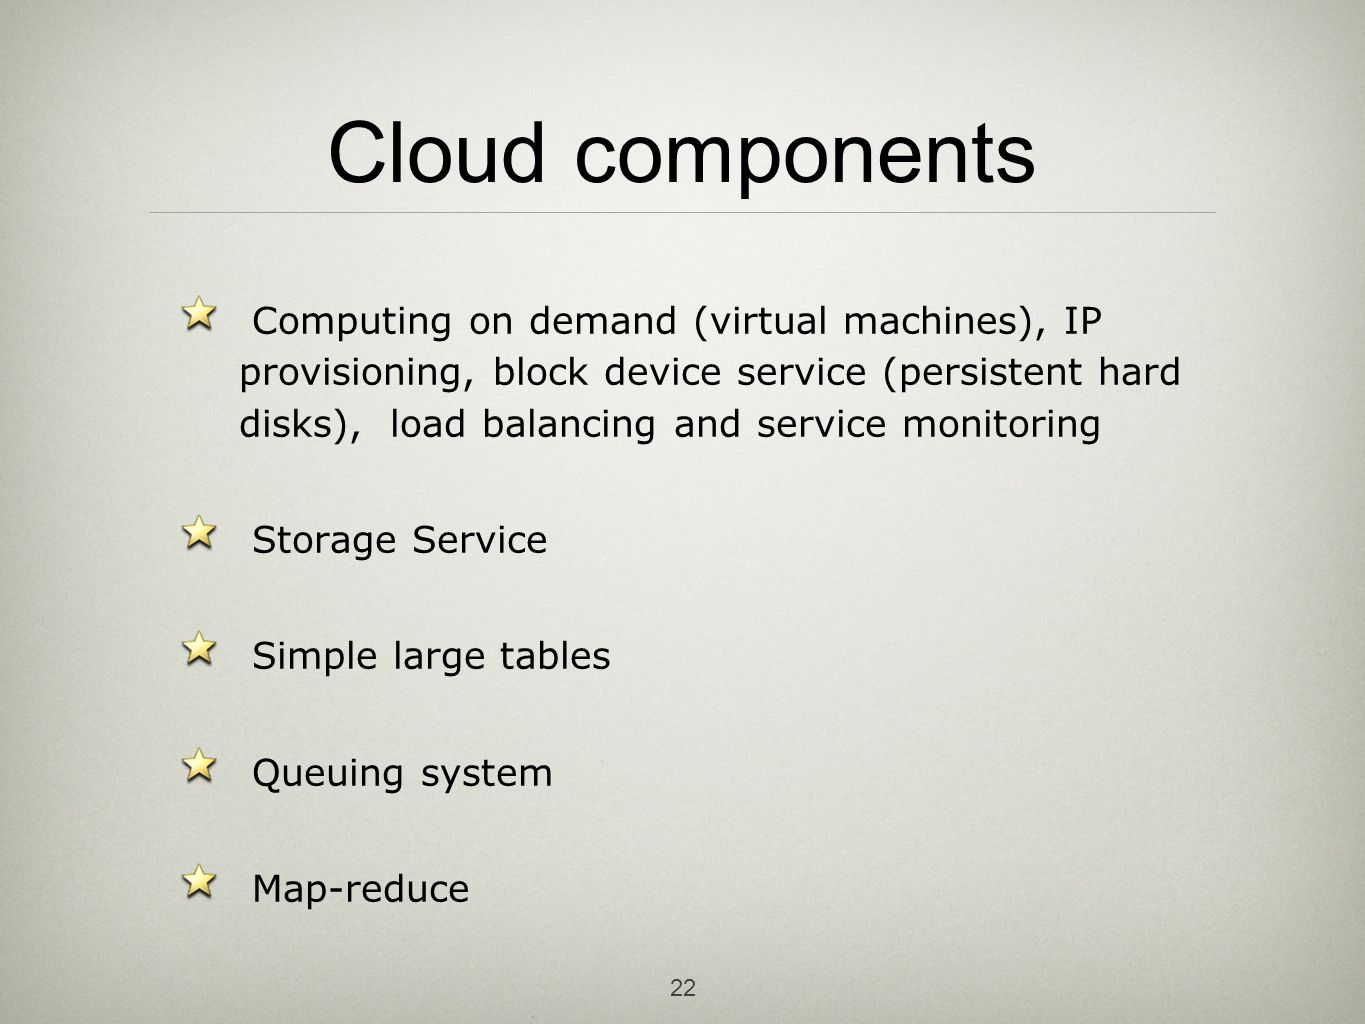 22 Cloud components Computing on demand (virtual machines), IP provisioning, block device service (persistent hard disks), load balancing and service monitoring Storage Service Simple large tables Queuing system Map-reduce